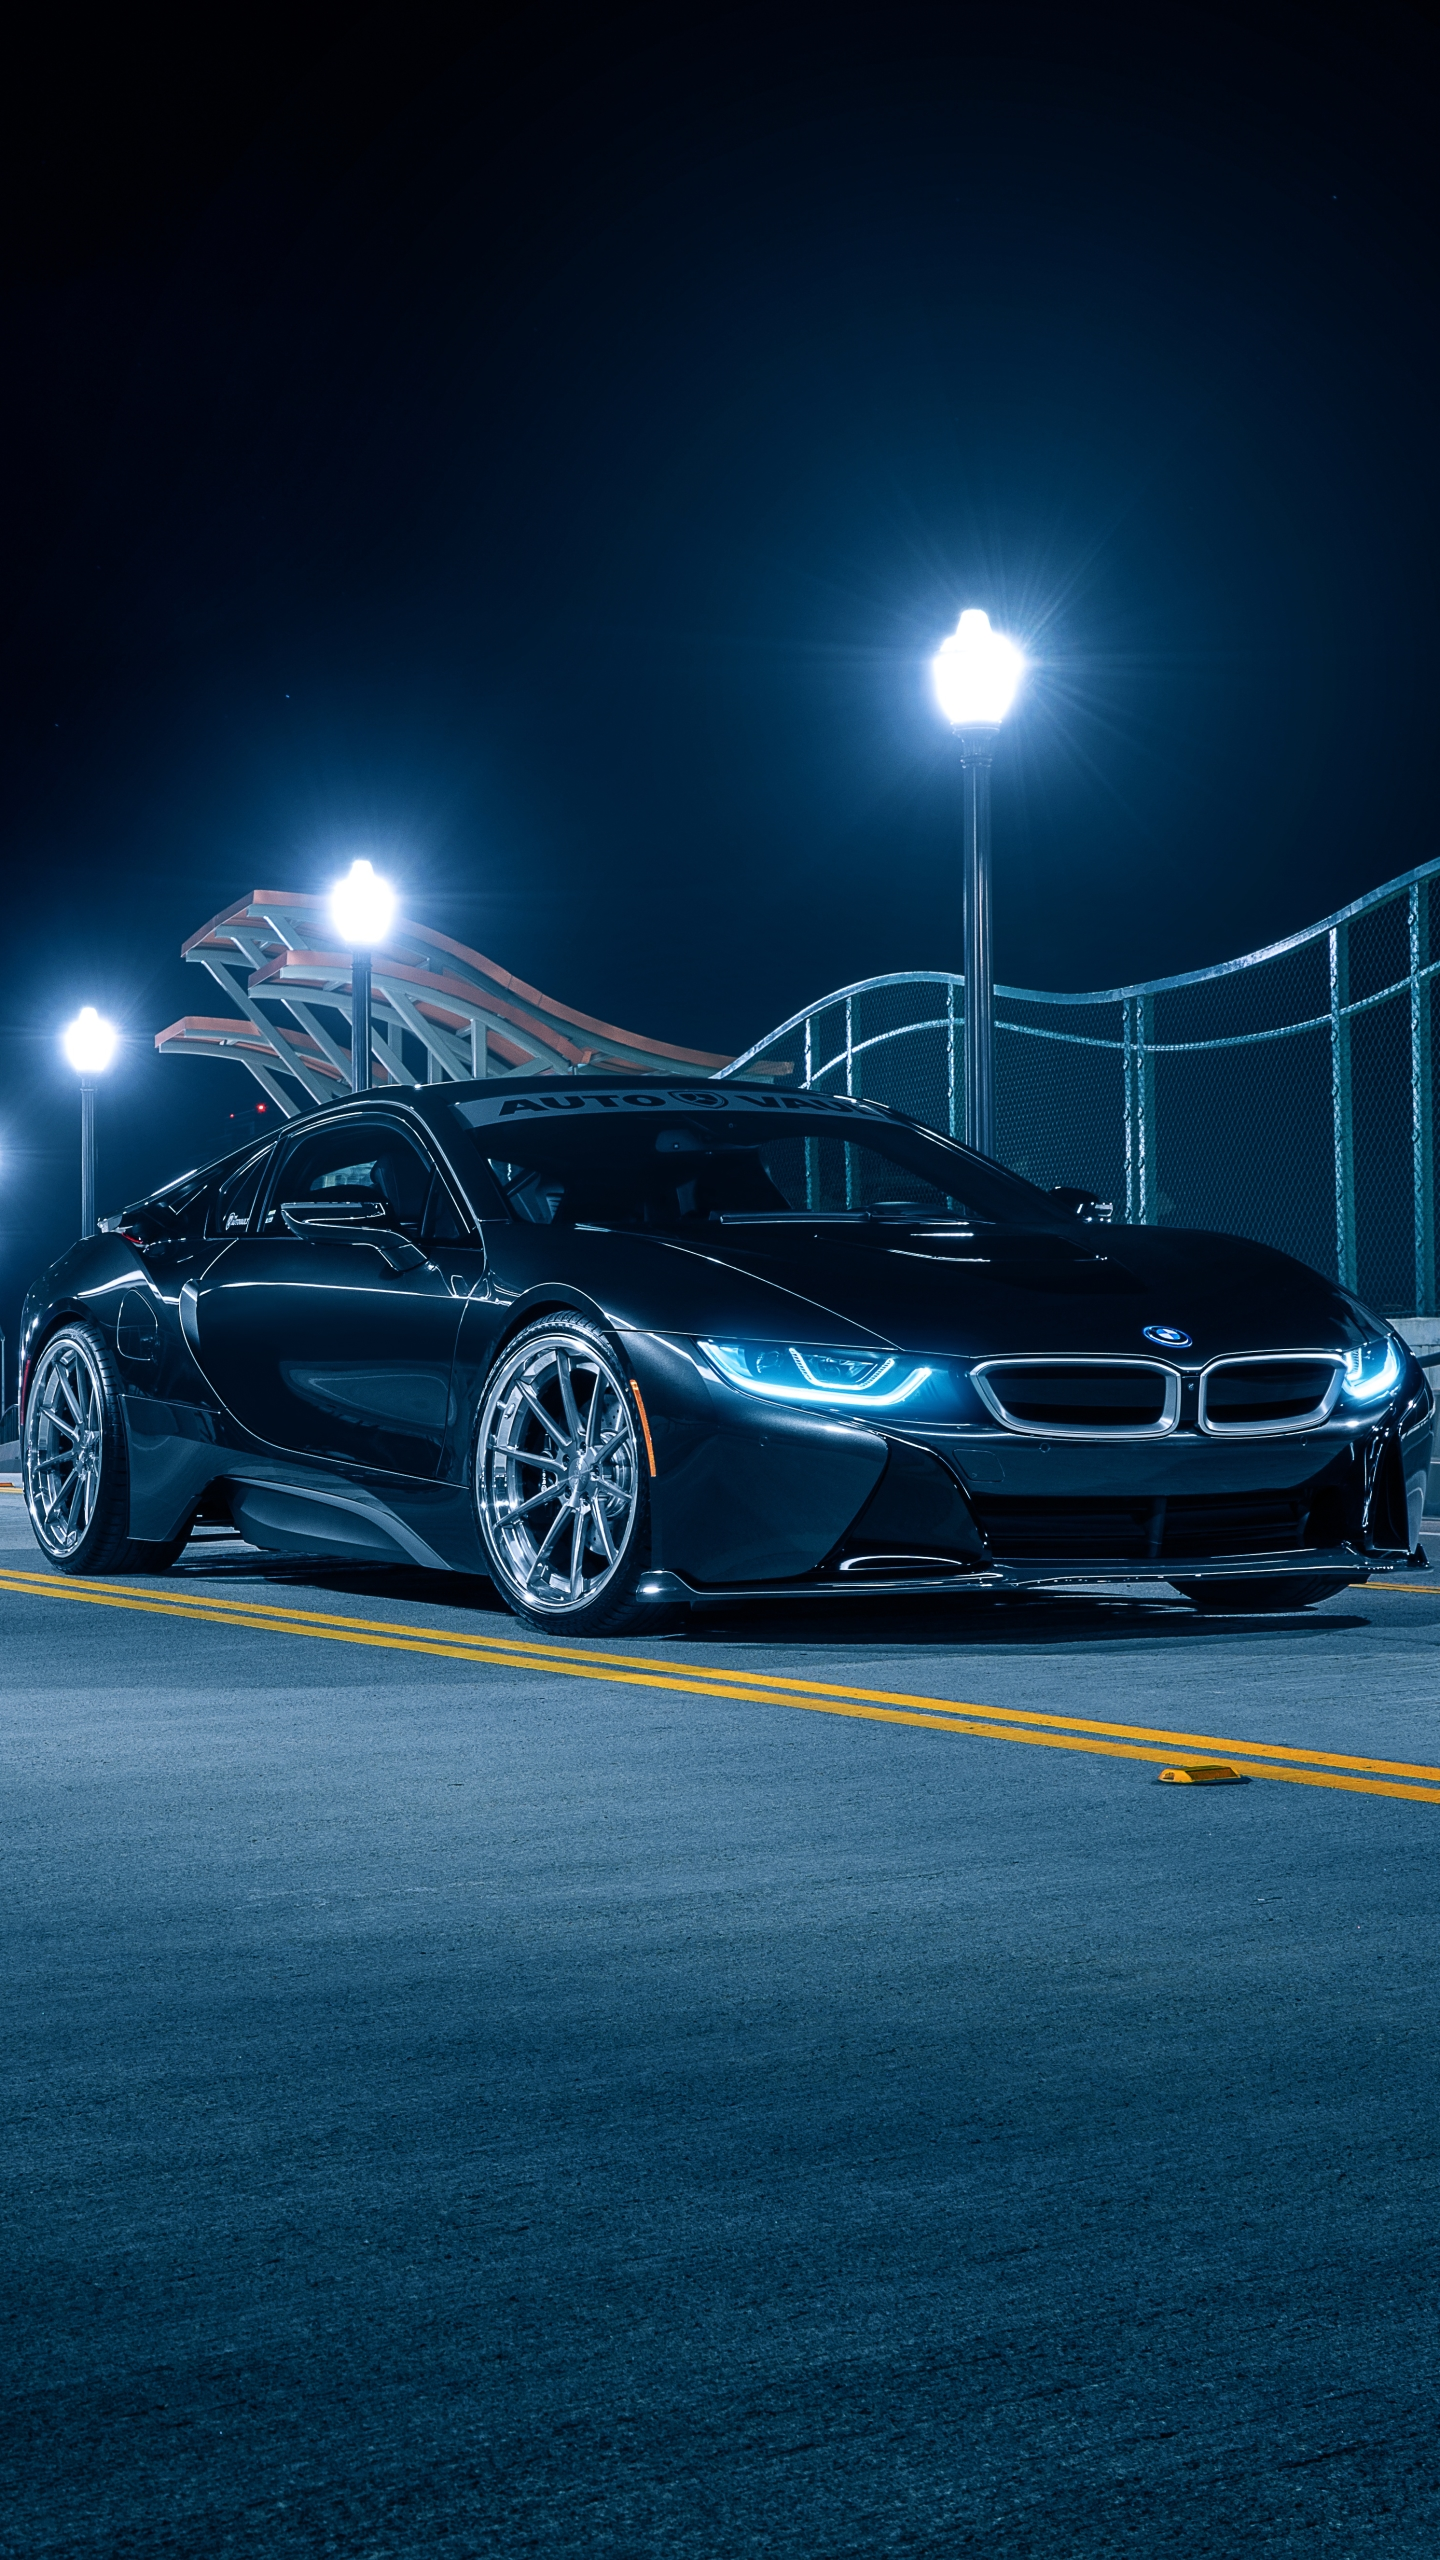 Vehicles BMW I8 1080x1920 Mobile Wallpaper